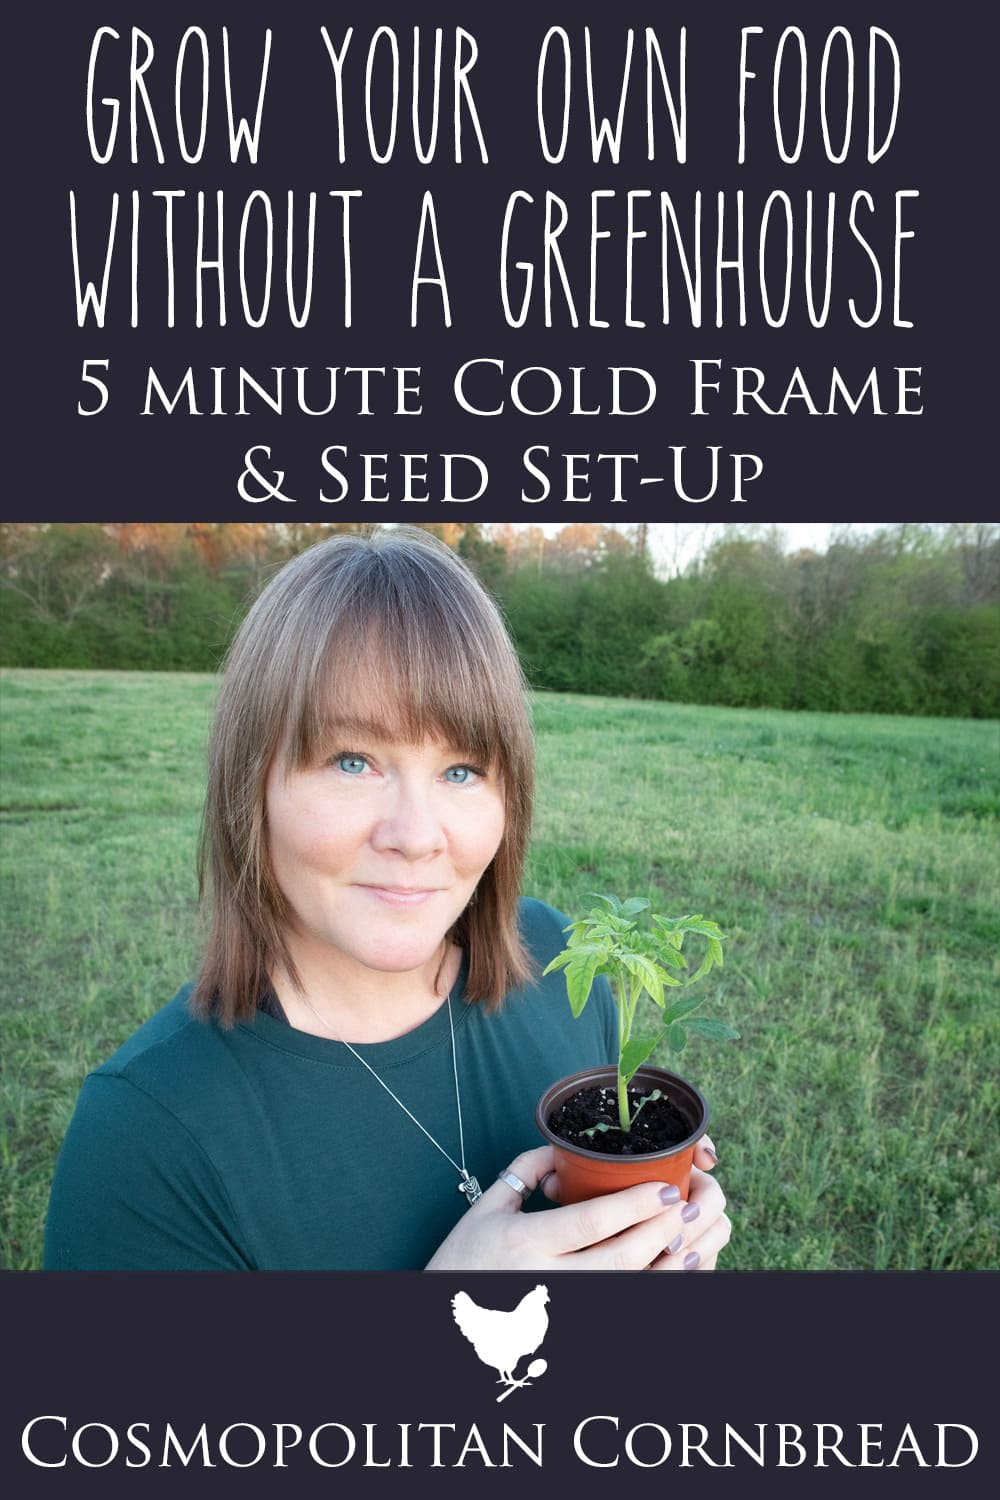 How to Grow Your Own Food without a Greenhouse - Make a 5 Minute Cold Frame & Seed Starting Set-Up